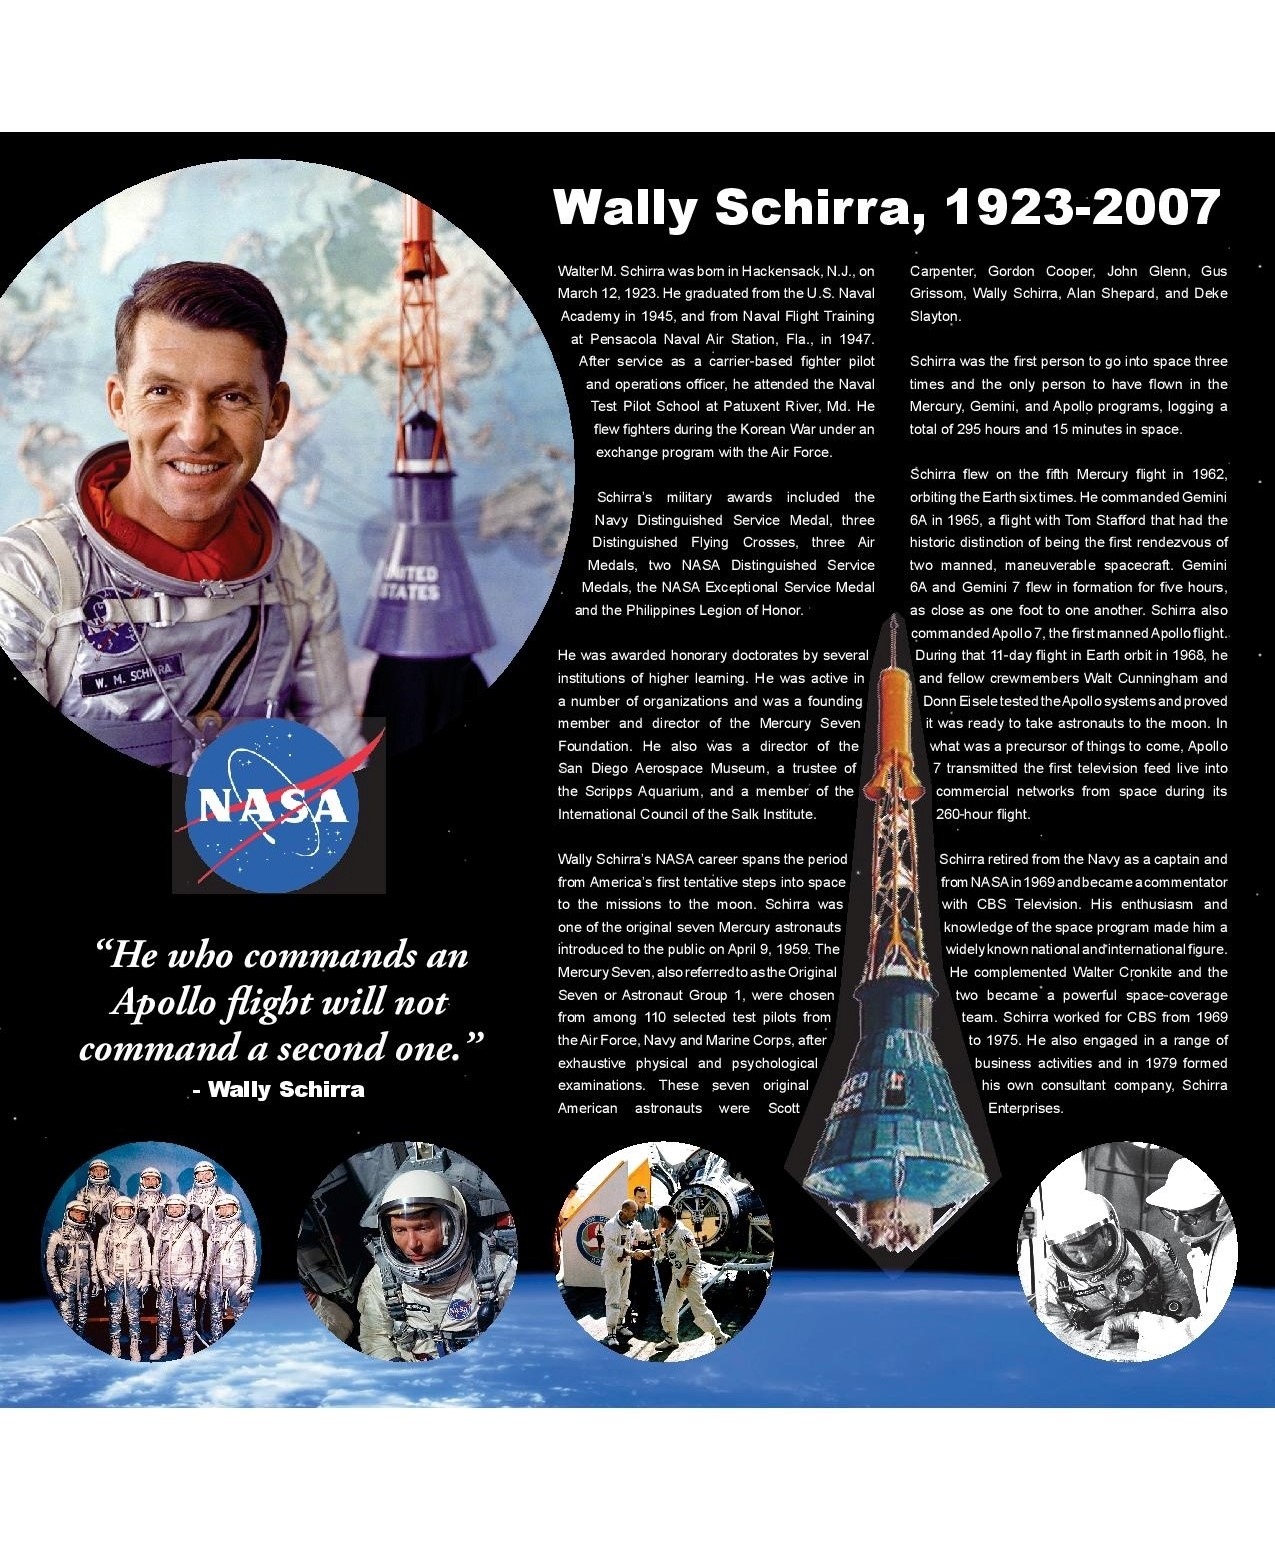 City of Mesquite Trail Monument_Wally Schirra - placard.jpg